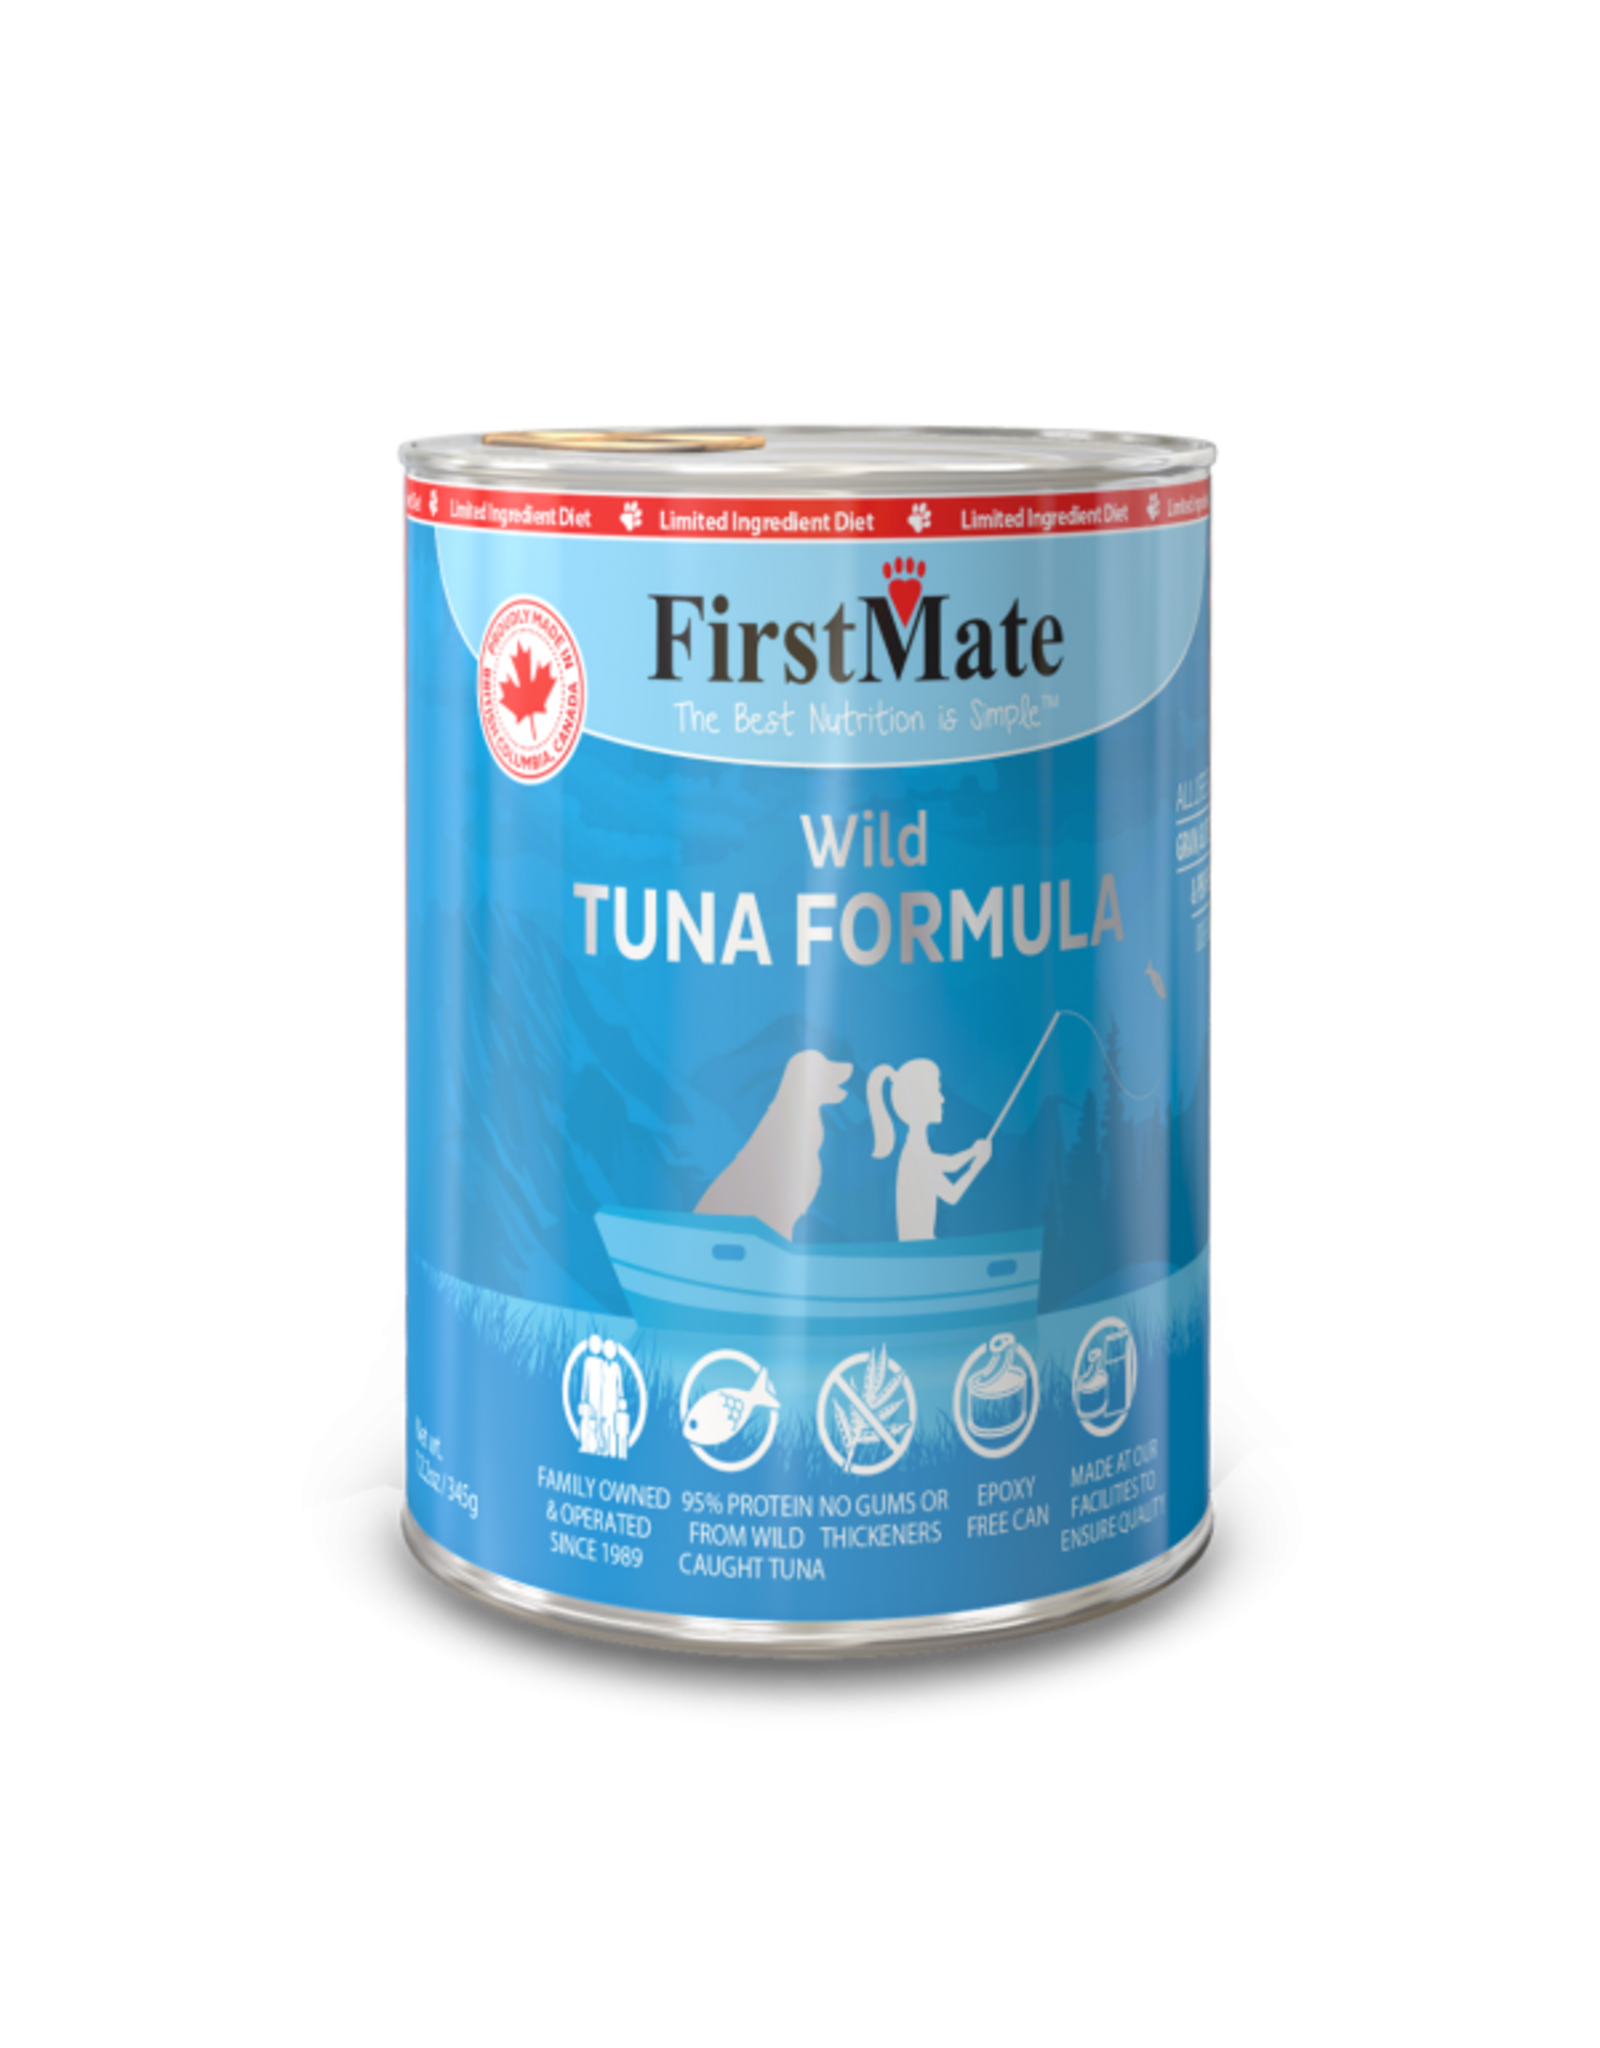 First Mate First Mate Dog LID Tuna 12.2oz